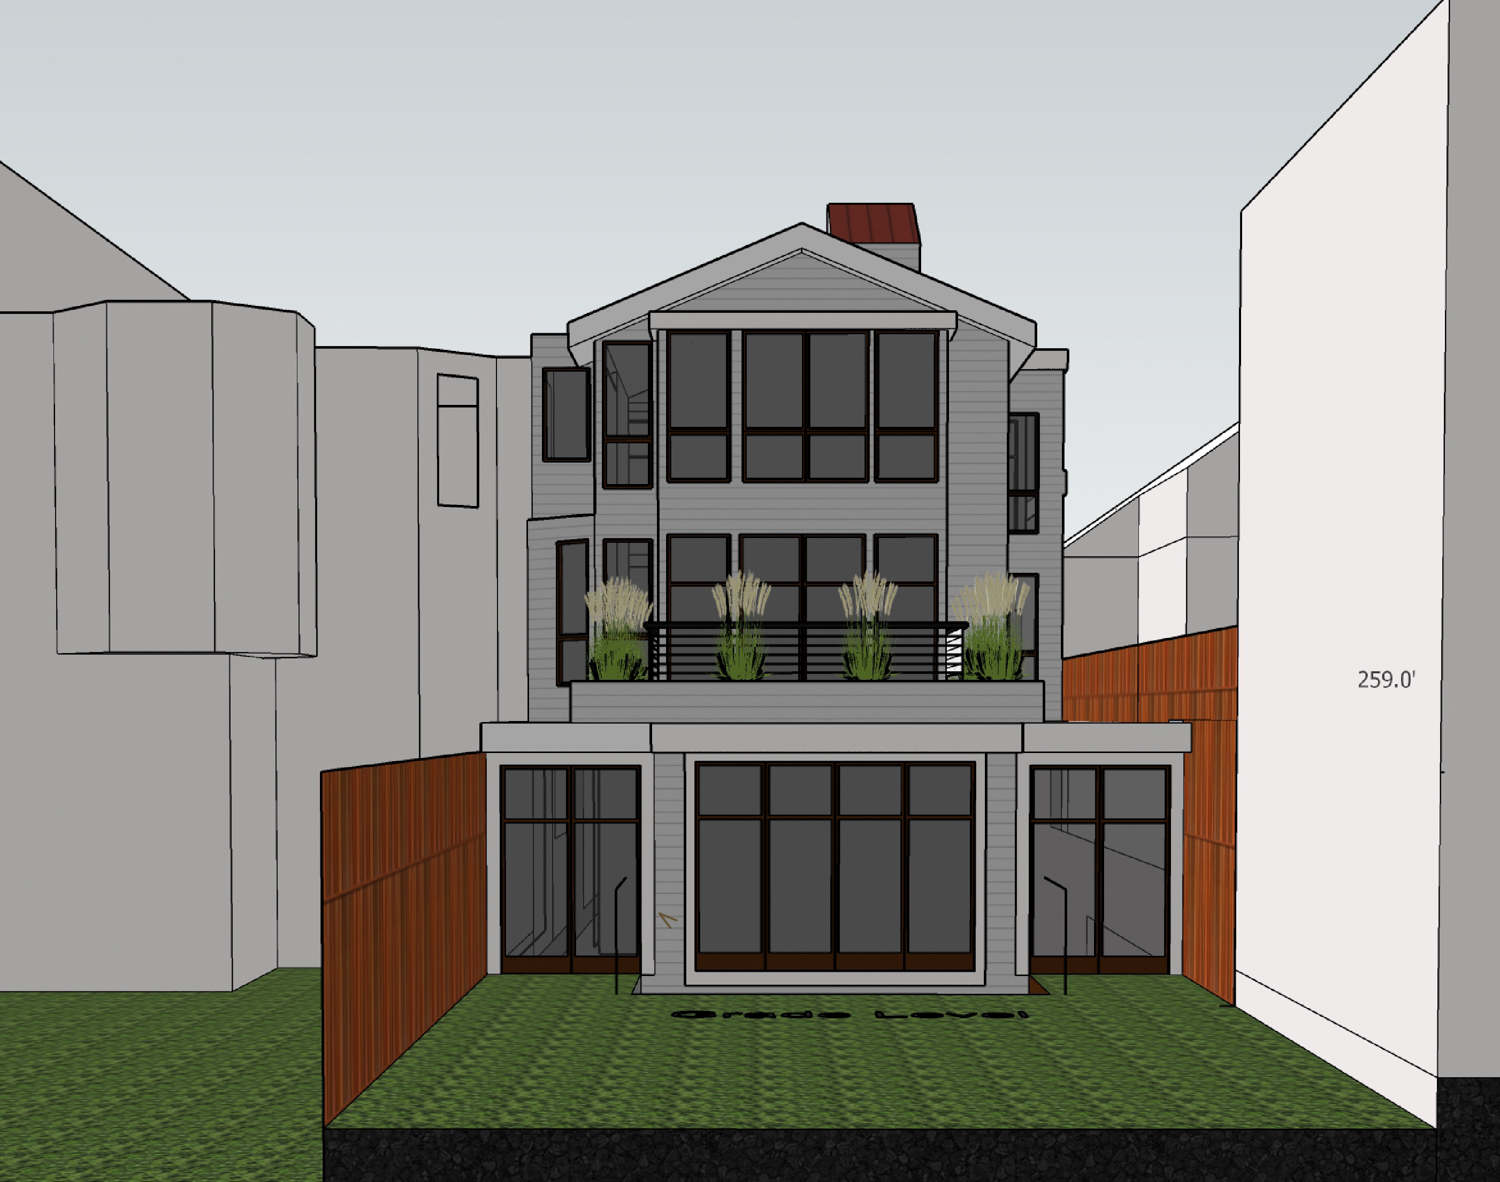 4234 24th Street backyard view, rendering by E.E. Weiss Architects